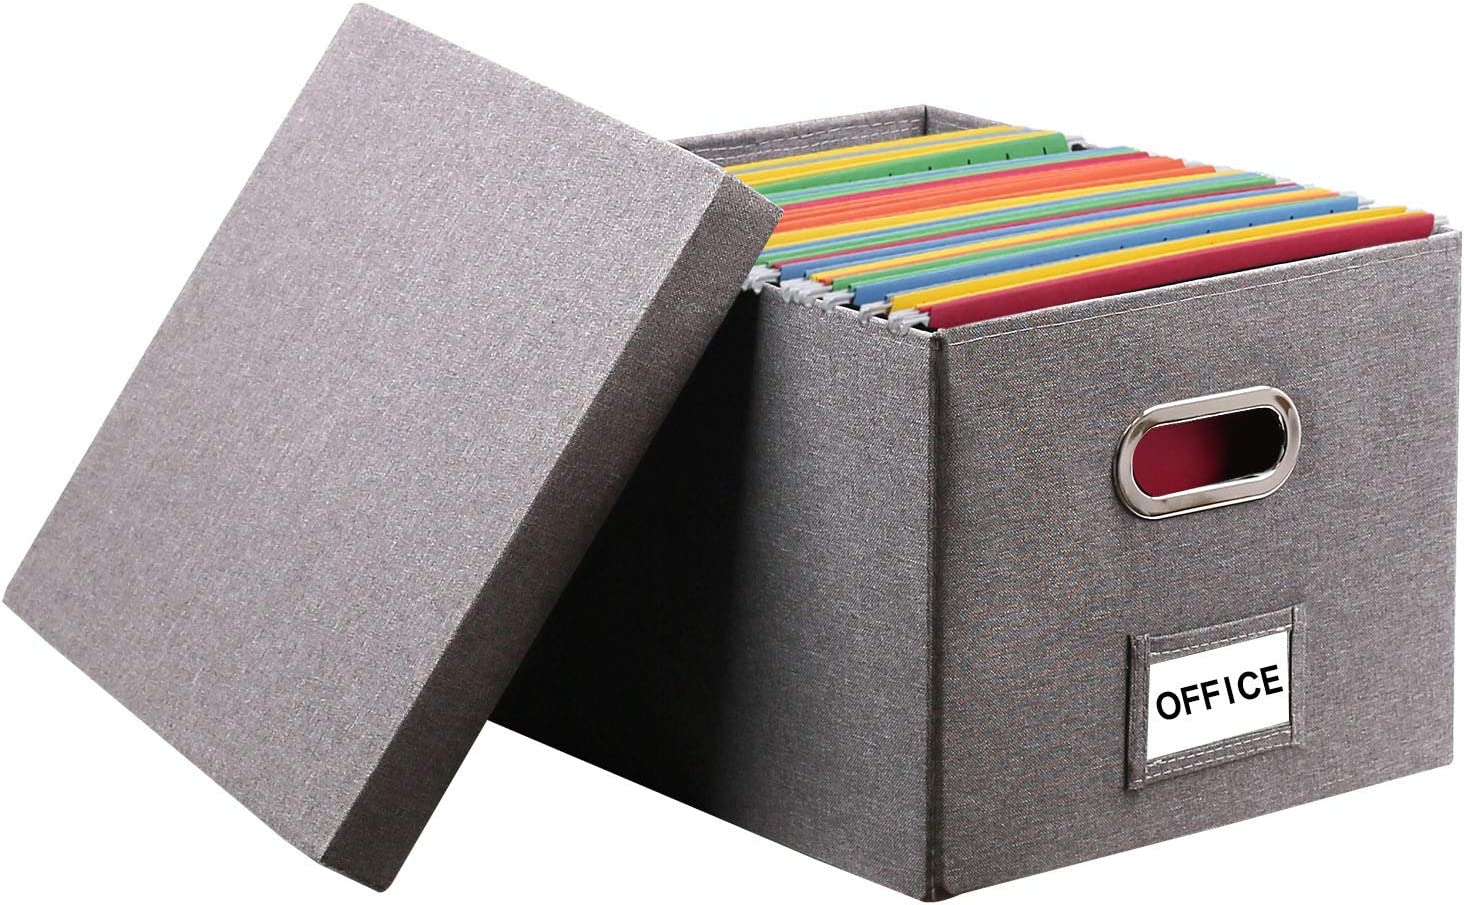 InStorages Collapsible File Box Storage Organizer with Lid,Decorative Linen Filing and Letter/Legal Storage Bins Grey(1 Pack)